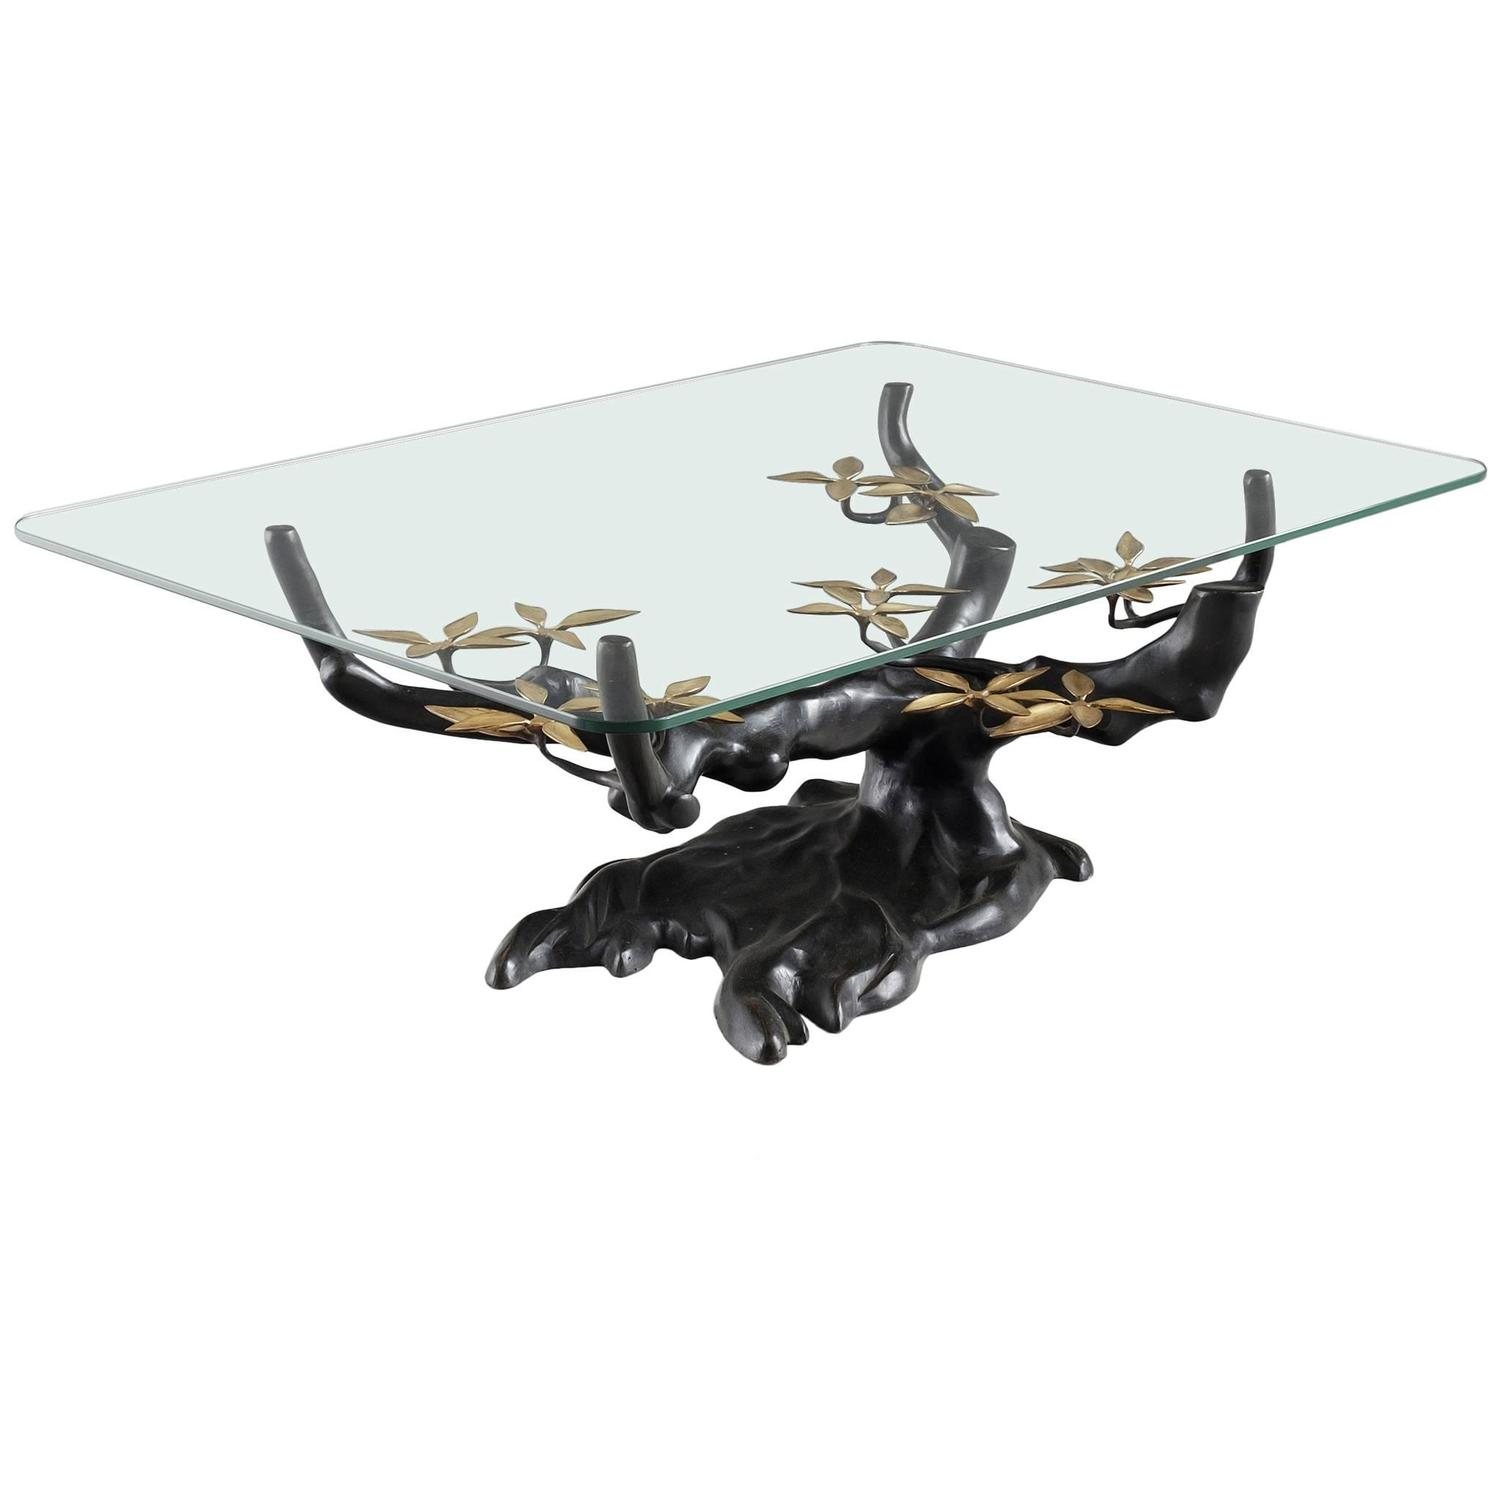 Bonsai Tree Coffee Table For Sale at 1stdibs